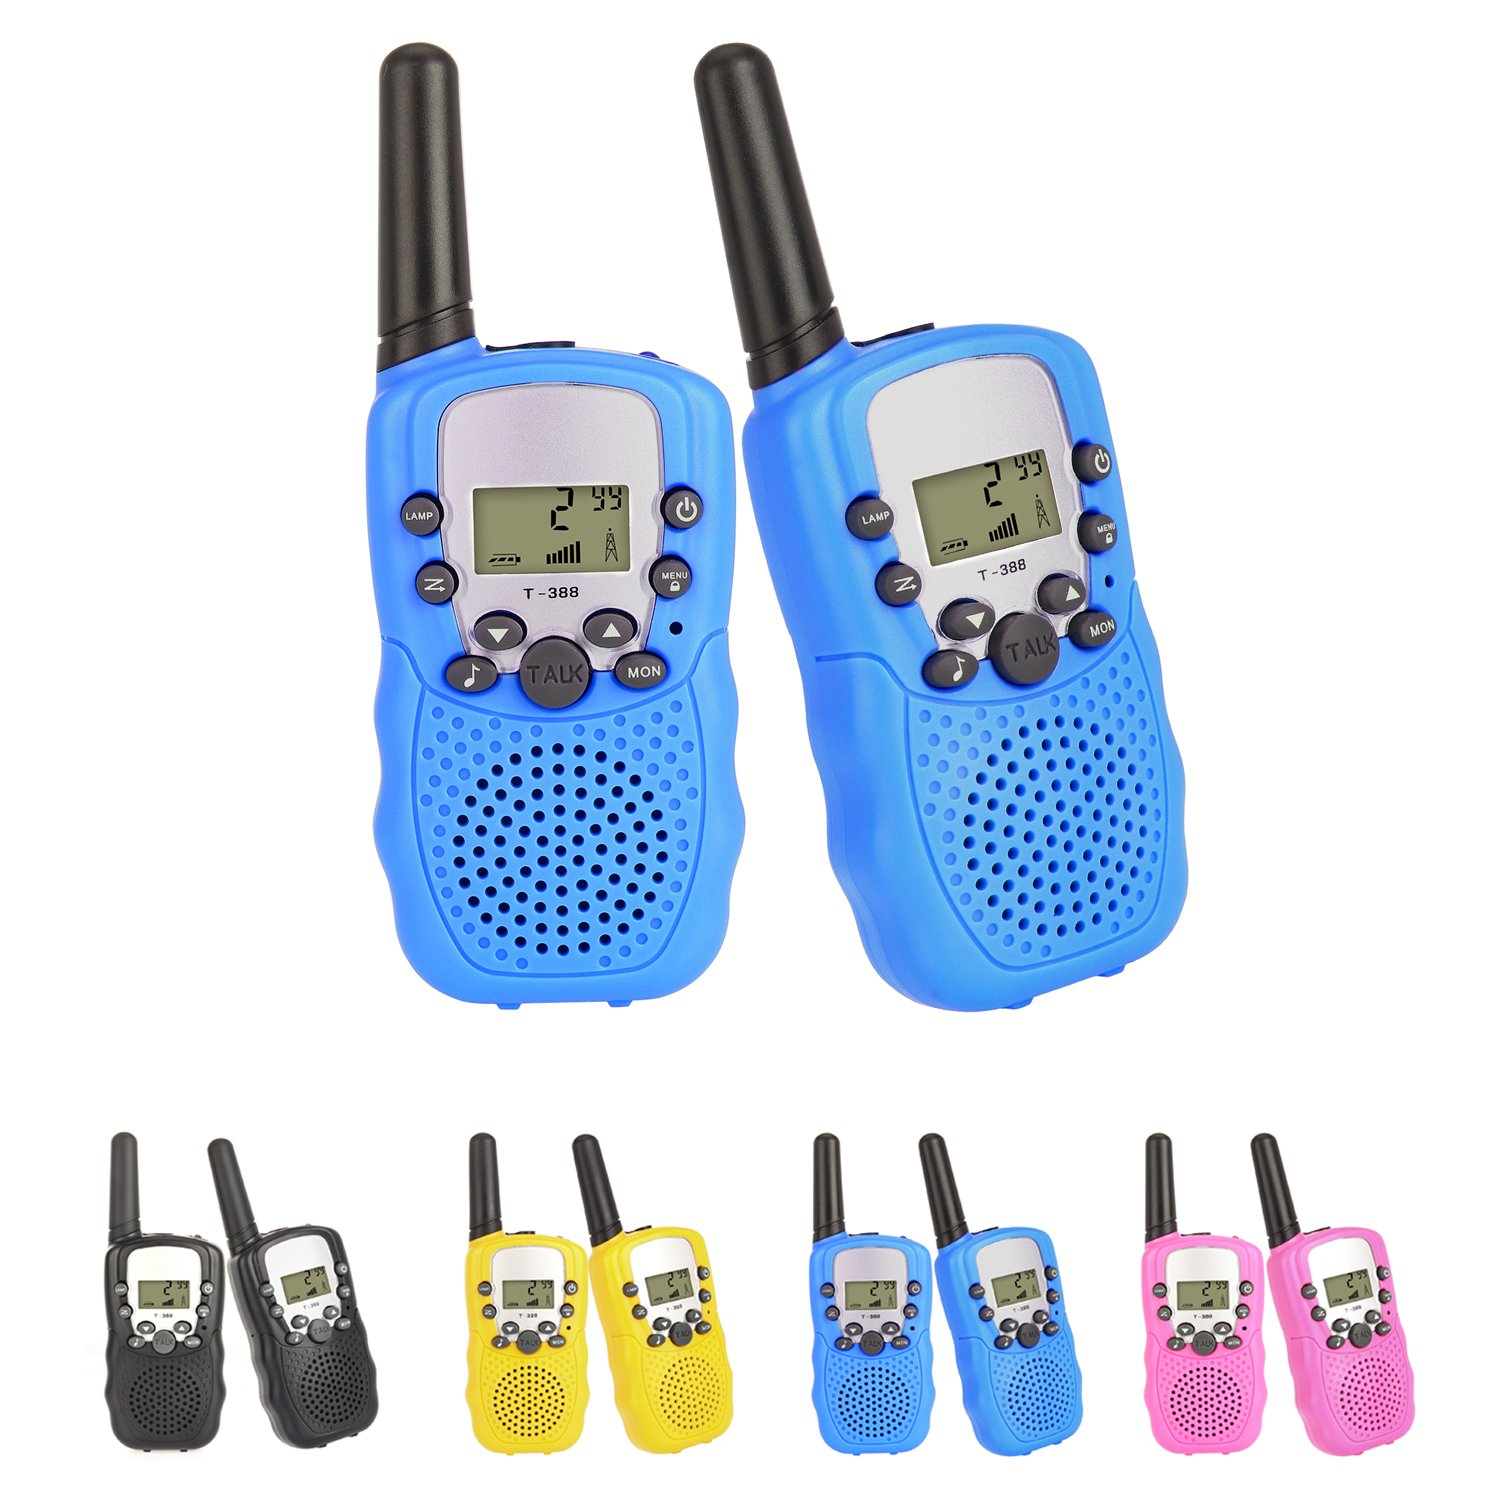 2 pcs Walkie Talkies Radio 3KM Range 8 Channels VOX Flashlight Battery Operated Handset with Indicator and Belt Clip for Children Outdoor Camping Hiking (Batteries Not Included) (Black * 2) Colleer DZDJ0002BK0UK